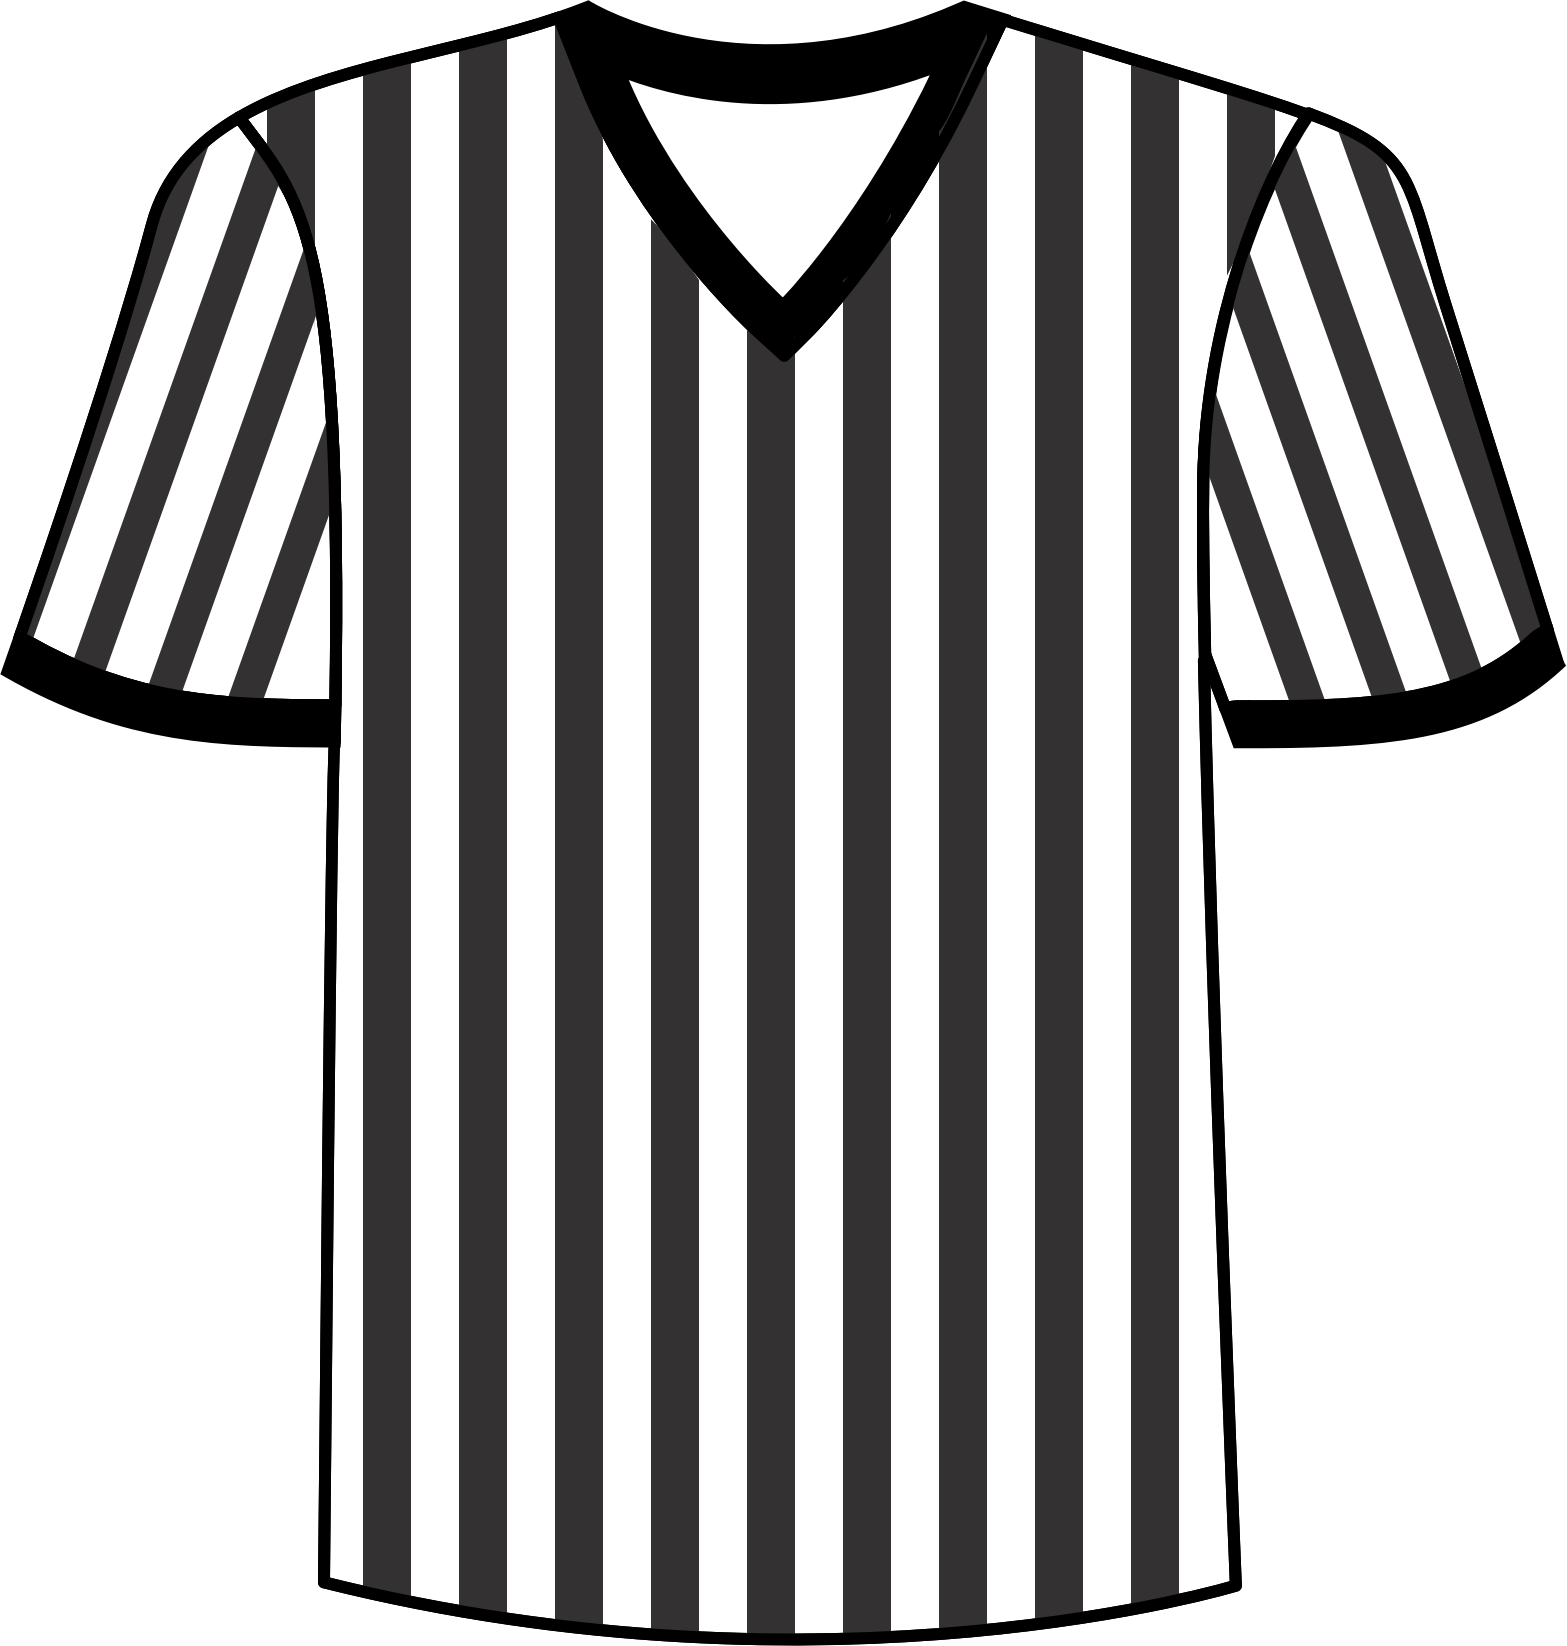 Referee clipart clipart best for Transparent top design